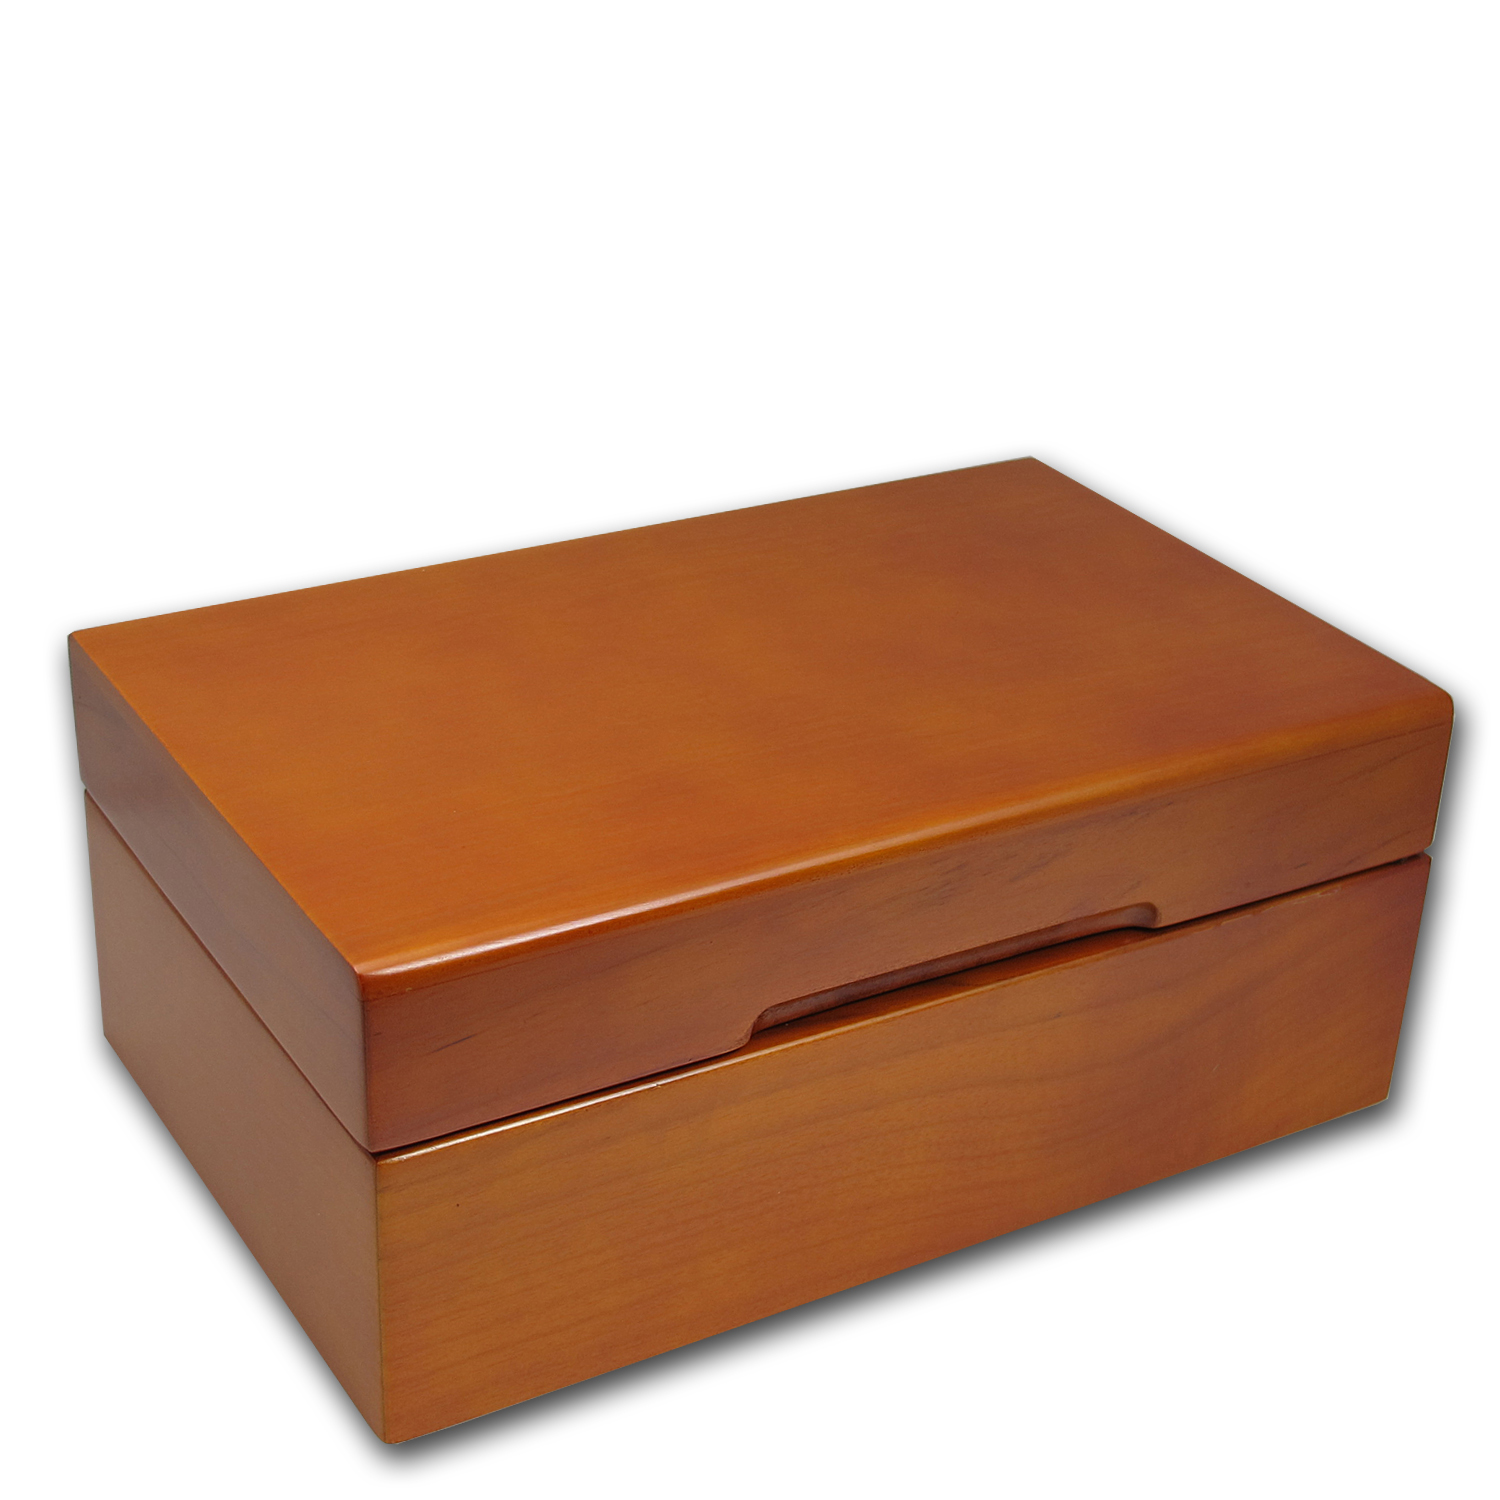 Wooden Slab Gift Box - 30 Slabs